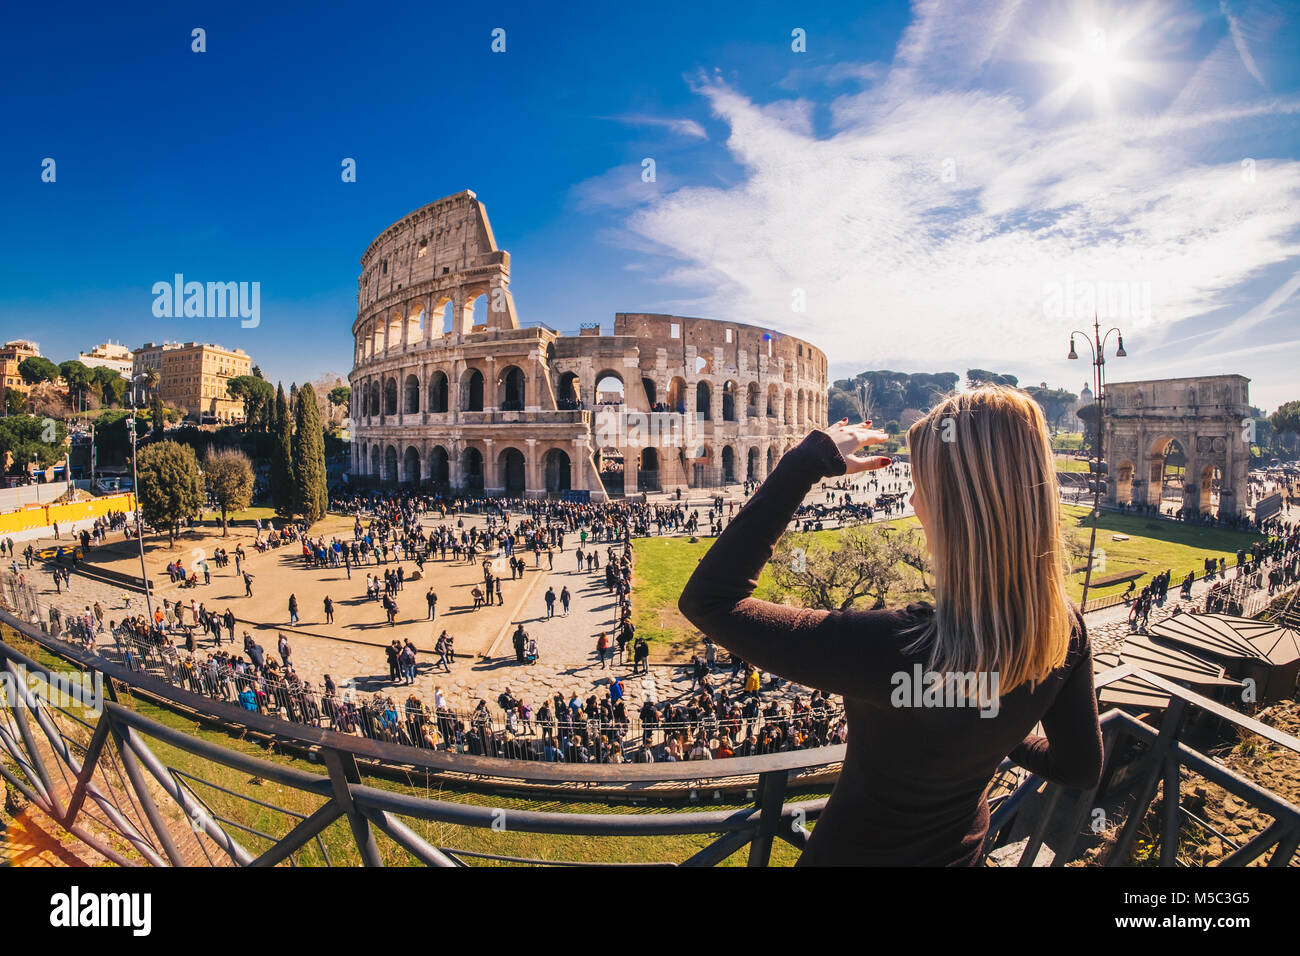 Woman tourist looking at the Roman Colosseum in Rome, Italy - Stock Image